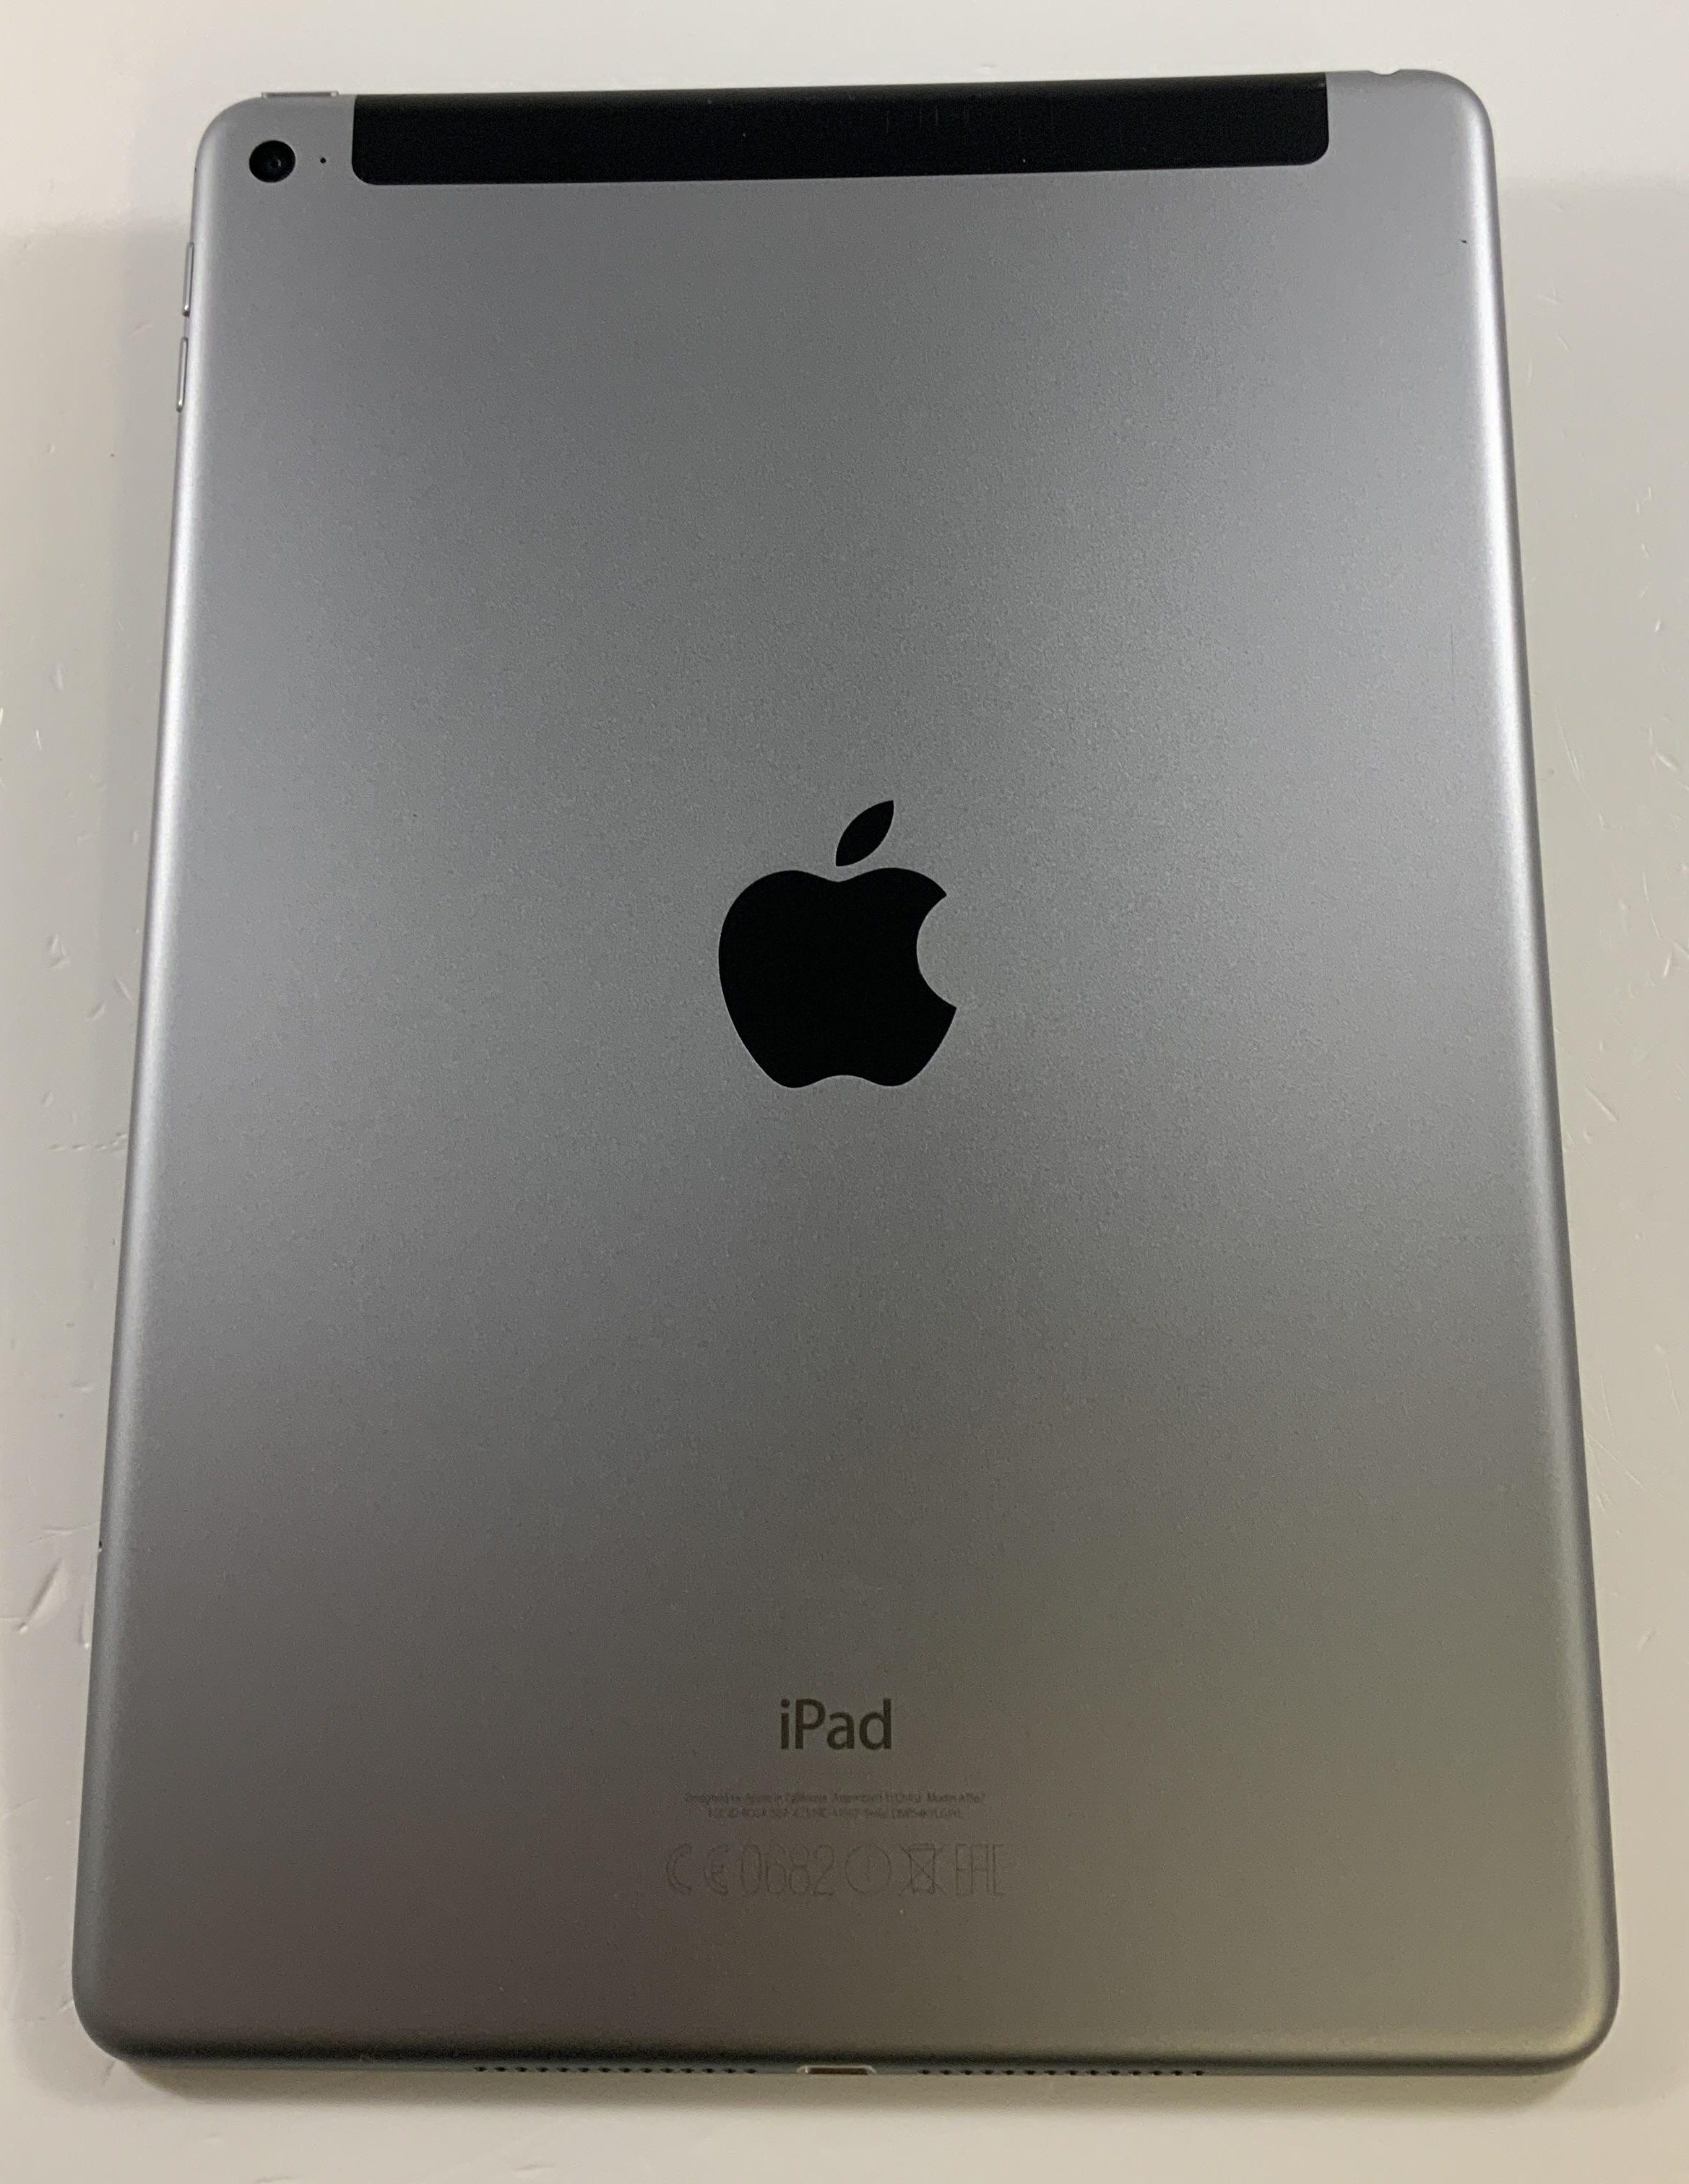 iPad Air 2 Wi-Fi + Cellular 64GB, 64GB, Space Gray, immagine 2